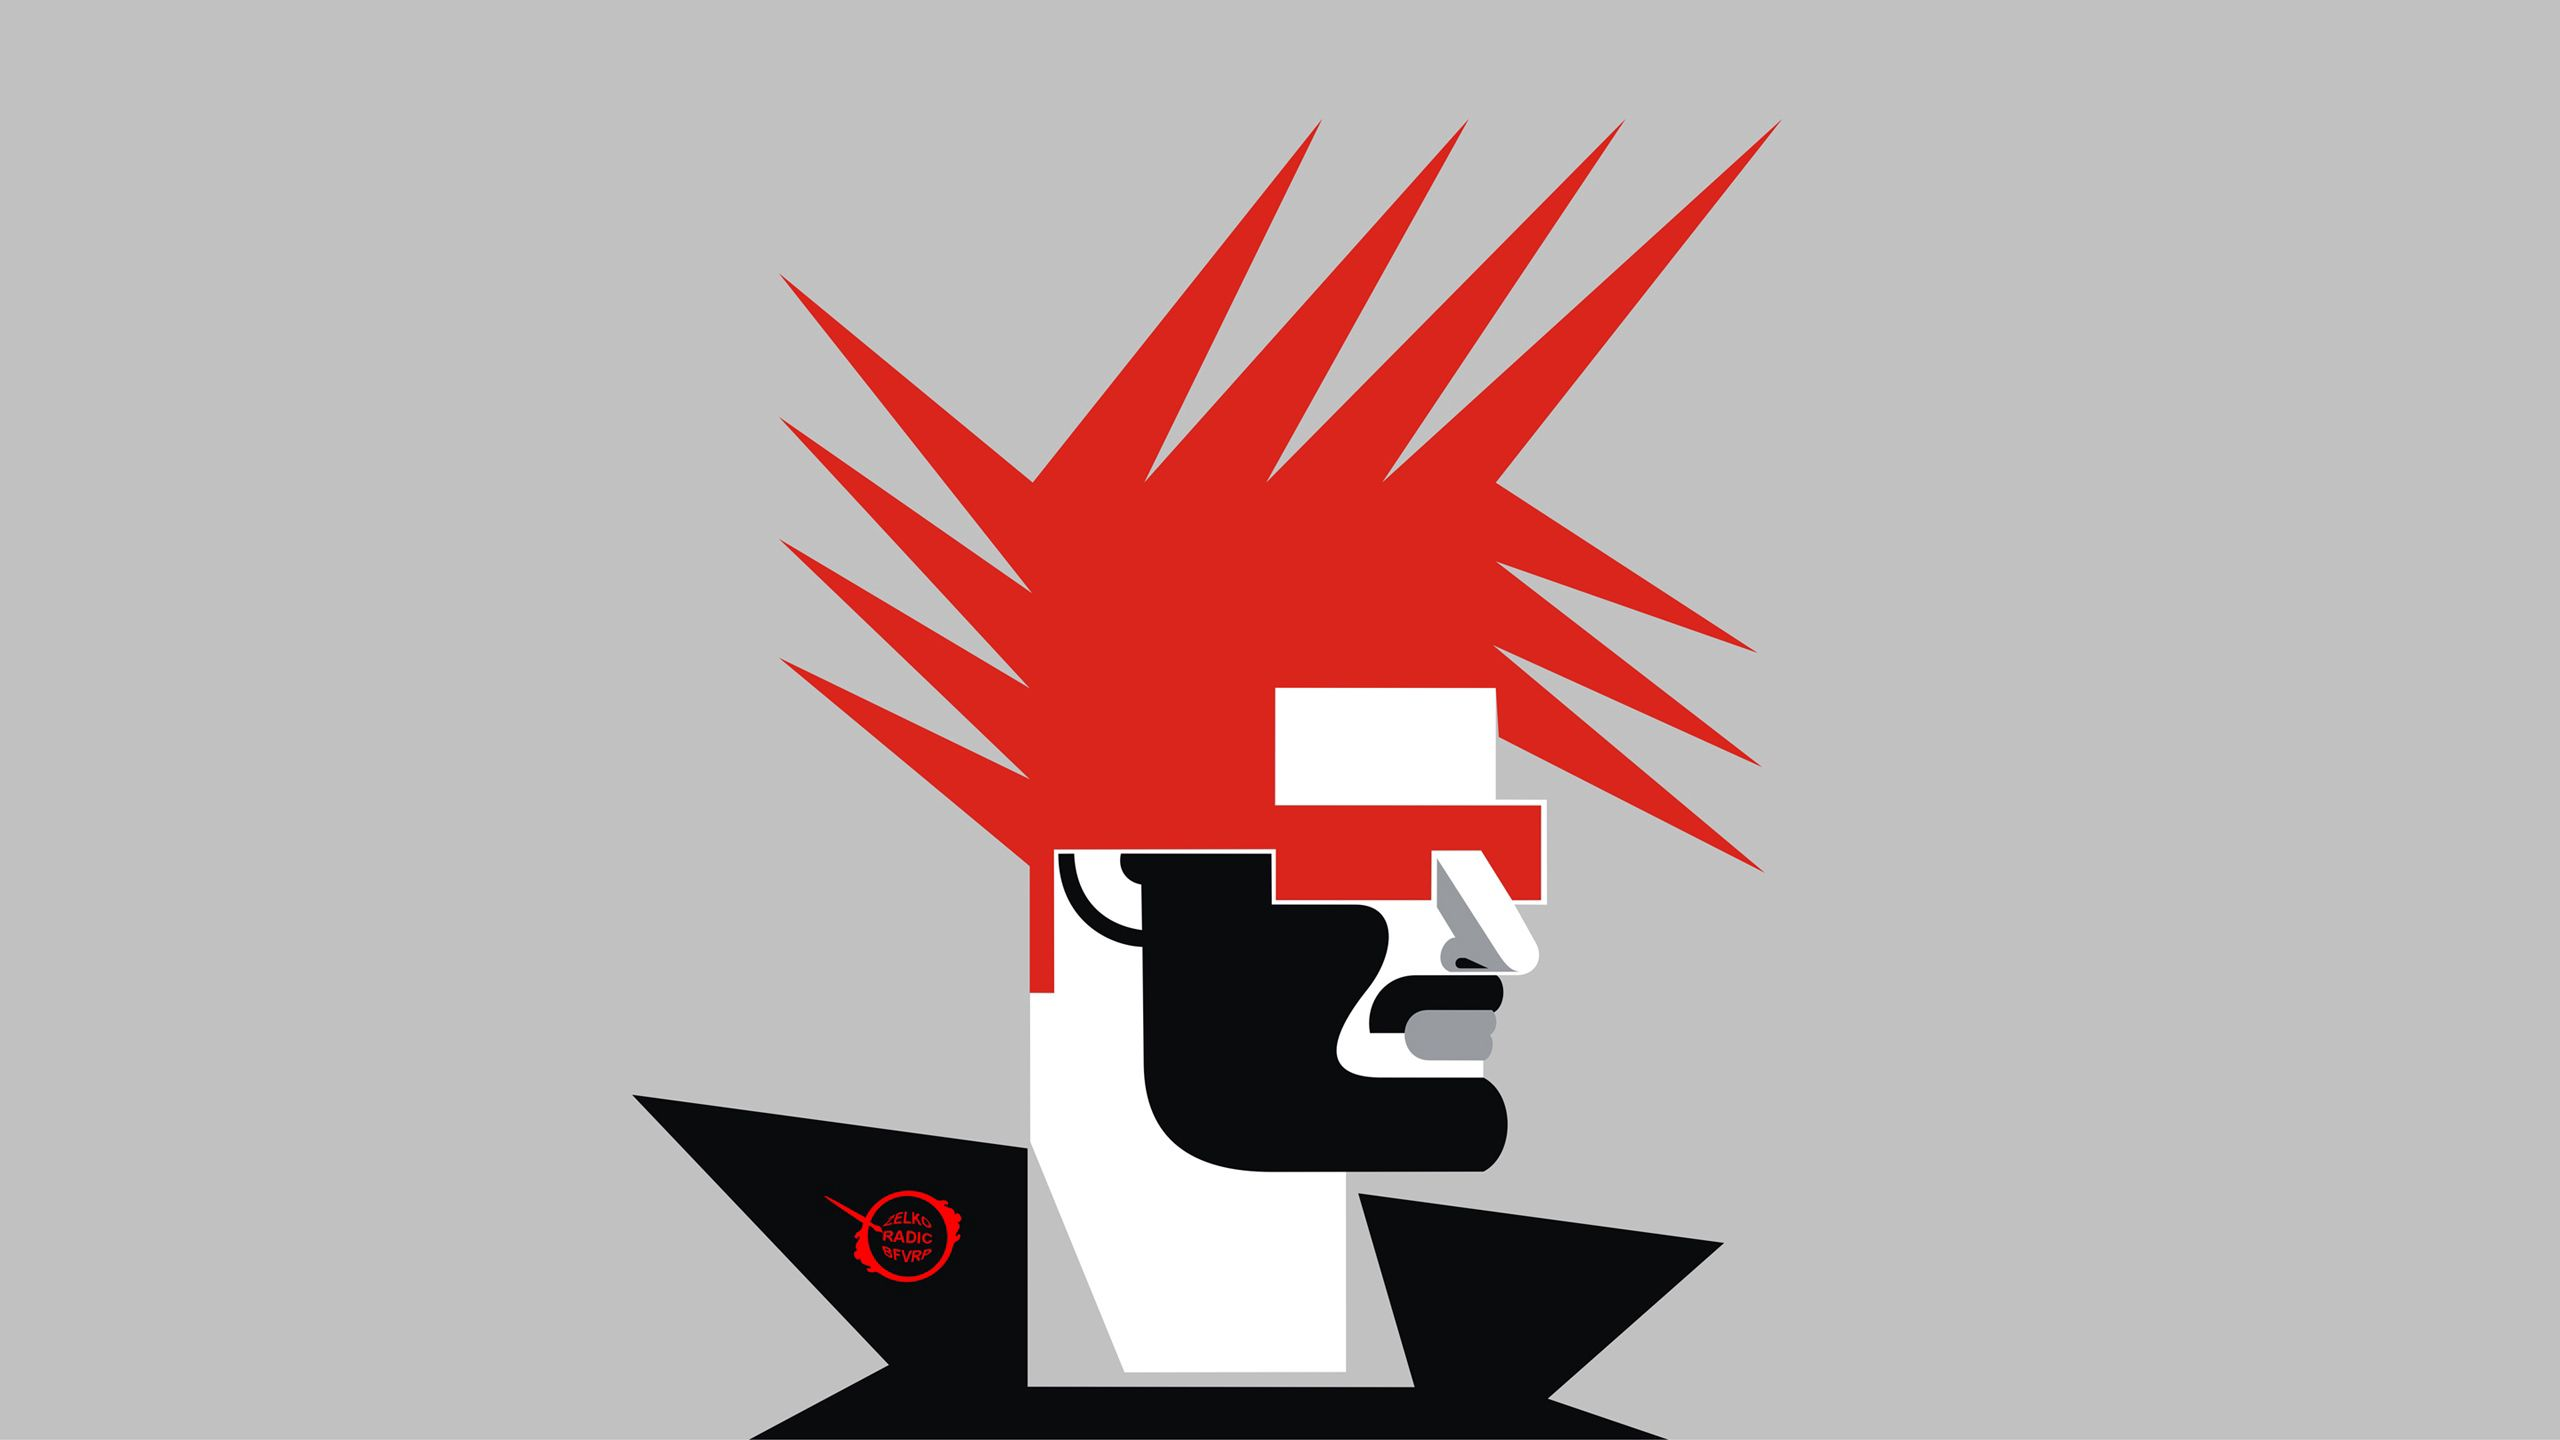 2560x1440 Wallpaper minimalism, art, mohawk, profile